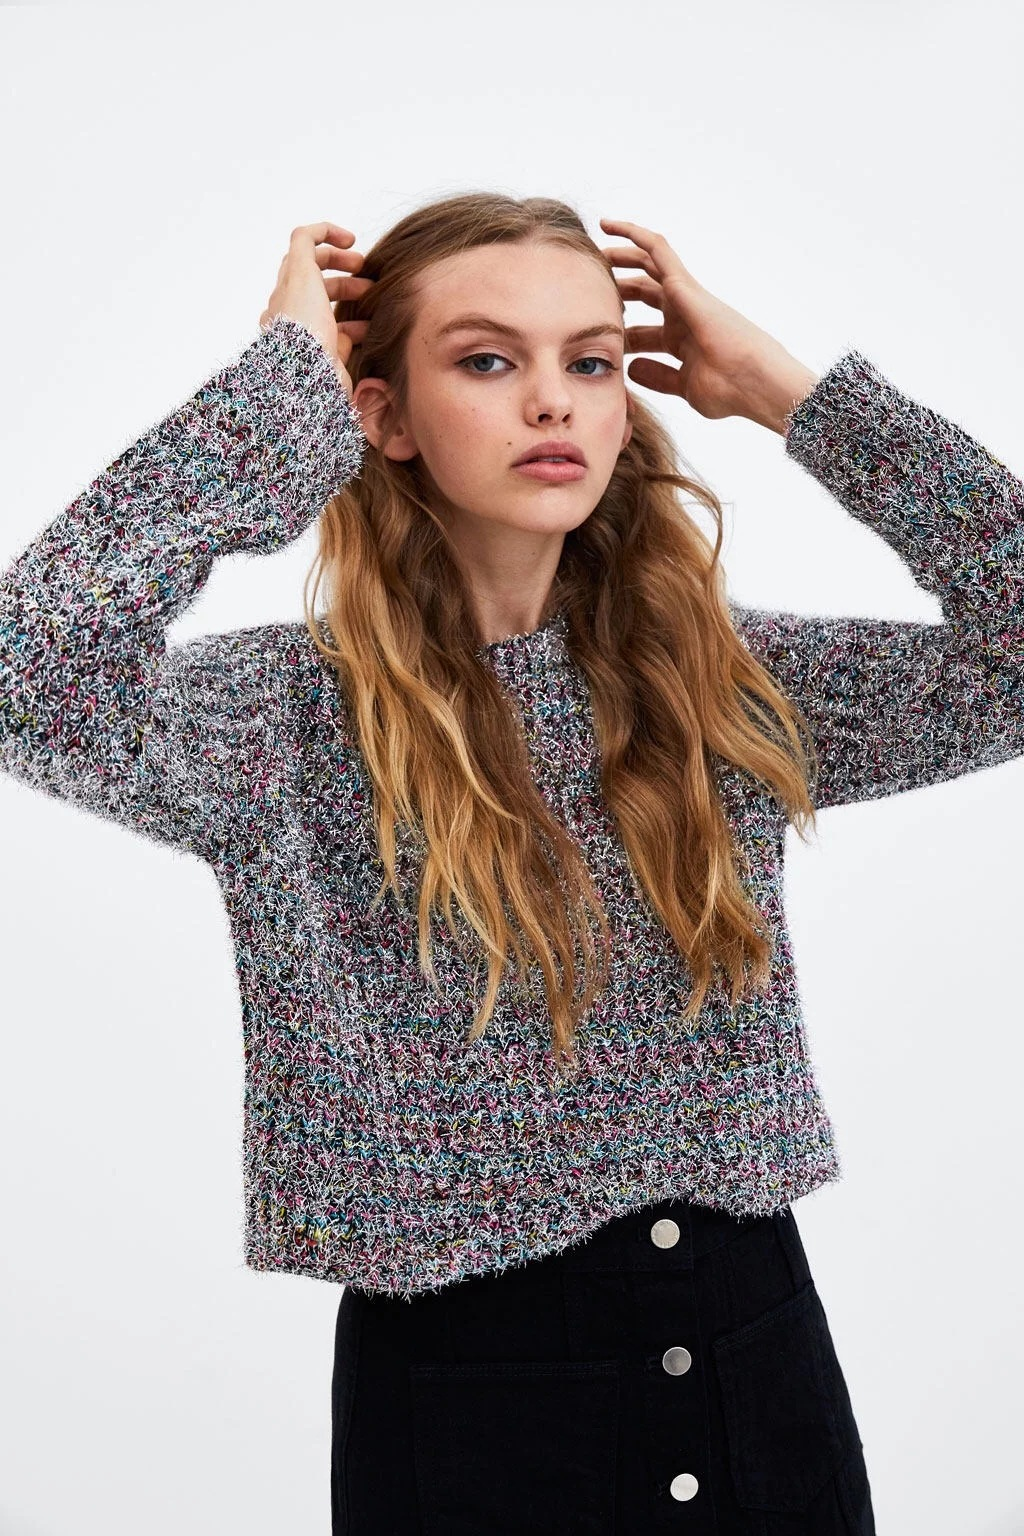 Women popular new D0920U17 autumn new Europe and the United States with gold thread wavy edge sweater # 1084